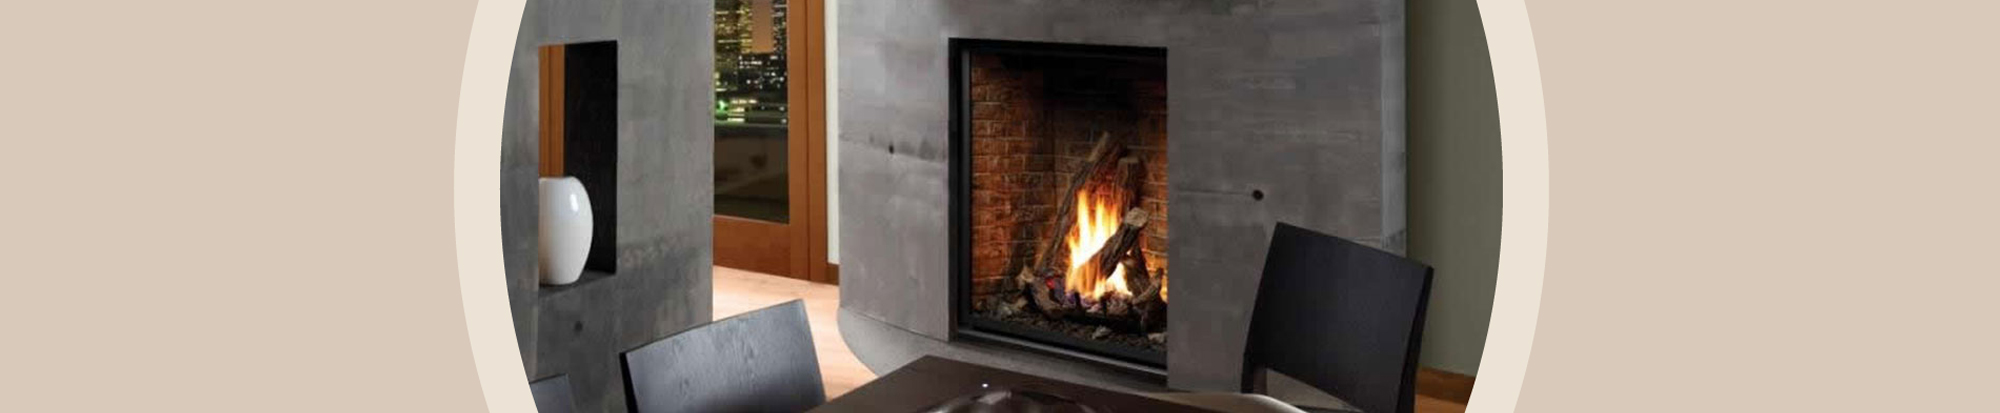 fireplace4-slider